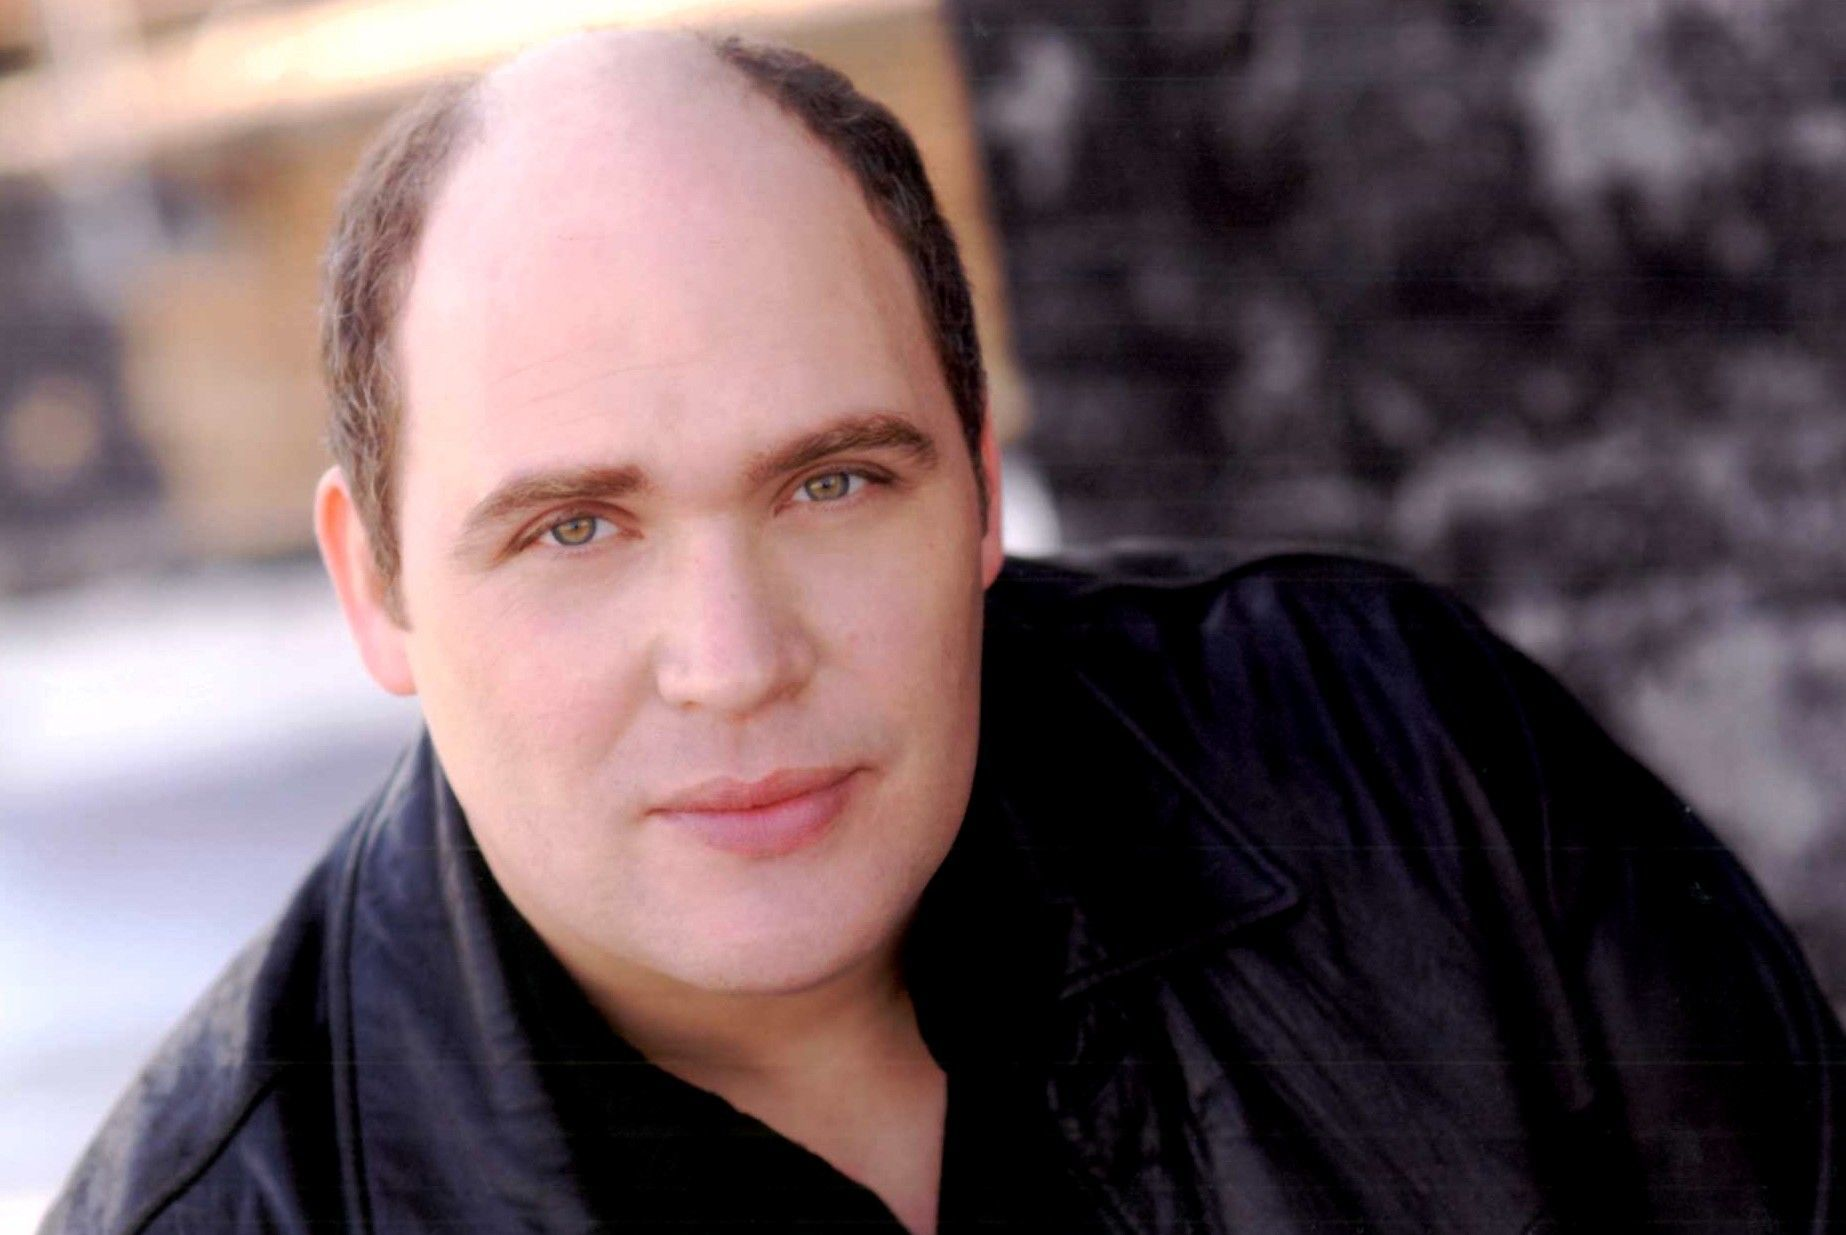 glenn fleshler hannibalglenn fleshler the following, glenn fleshler height, glenn fleshler, glenn fleshler wiki, glenn fleshler true detective, гленн флешлер, glenn fleshler wikipedia, glenn fleshler hannibal, glenn fleshler boardwalk empire, glenn fleshler actor, гленн флешлер вики, гленн флешлер настоящий детектив, glenn fleshler bio, glenn fleshler interview, glenn fleshler imdb, glenn fleshler sex and the city, glenn fleshler wife, glenn fleshler the wire, glenn fleshler true detective interview, glenn fleshler age